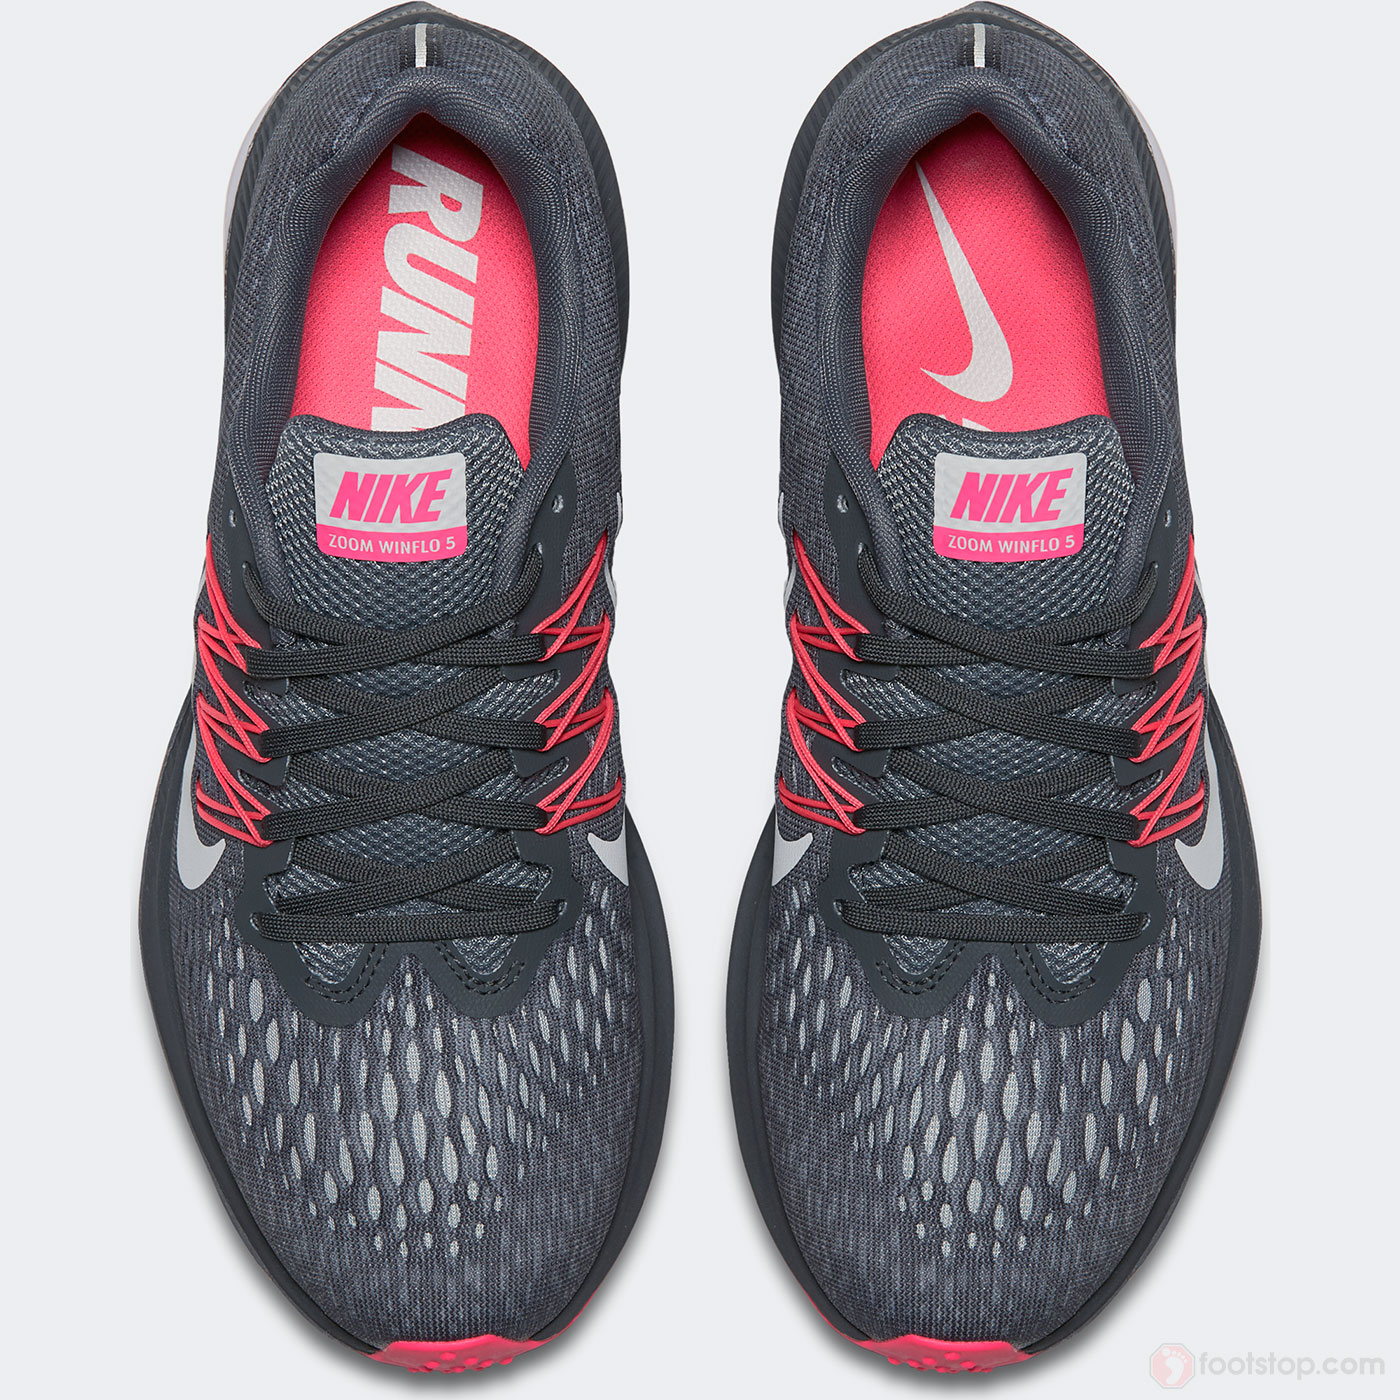 separation shoes ffbf4 96e83 Home Mujer Zapatillas de running mujer. nike wmns zoom winflo 5 ...